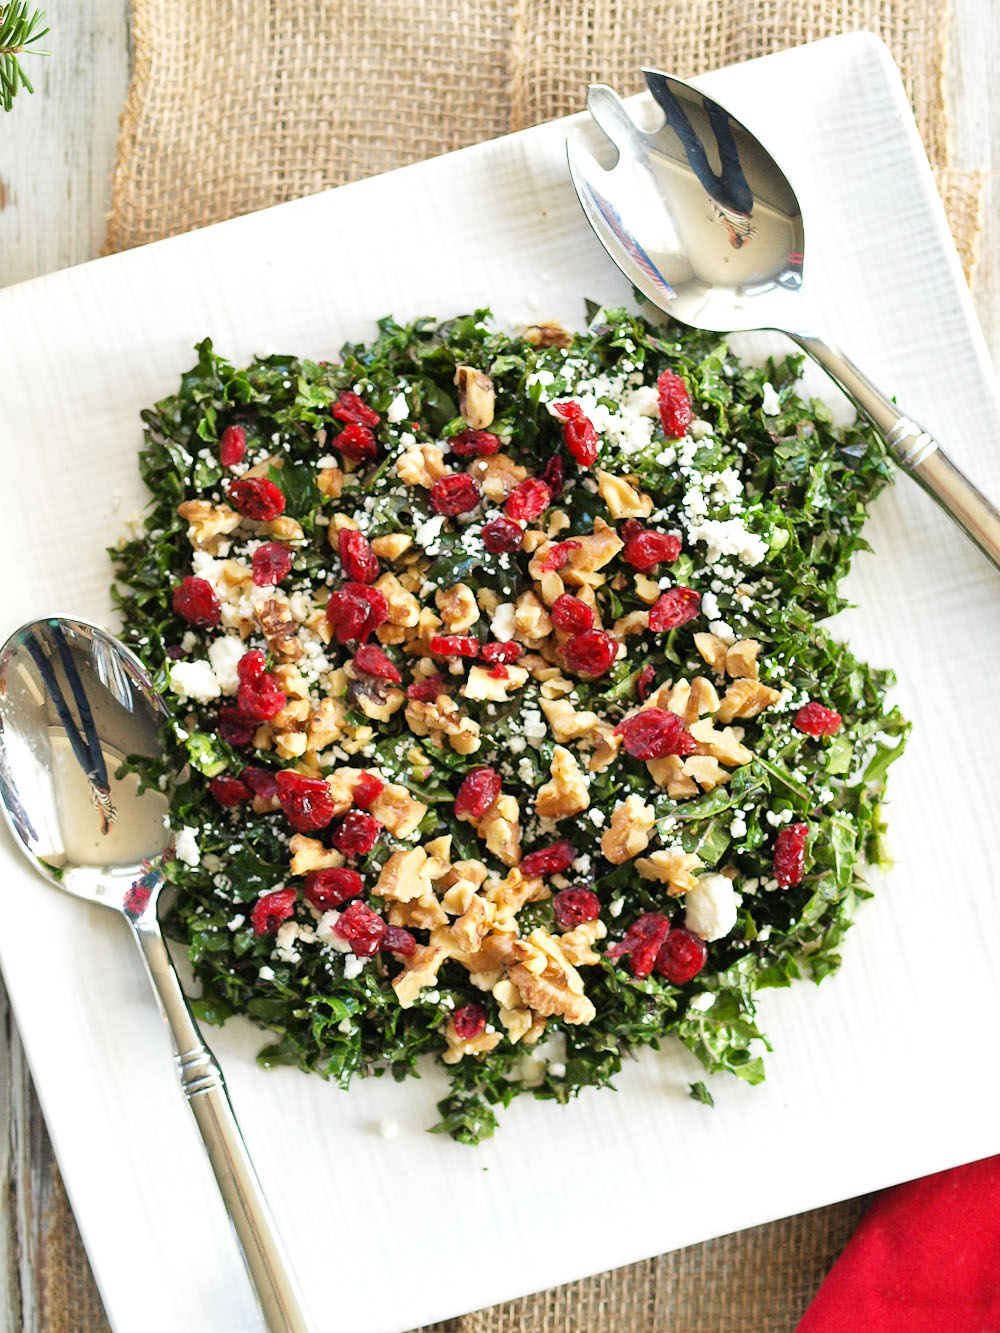 Baby kale salad recipes easy